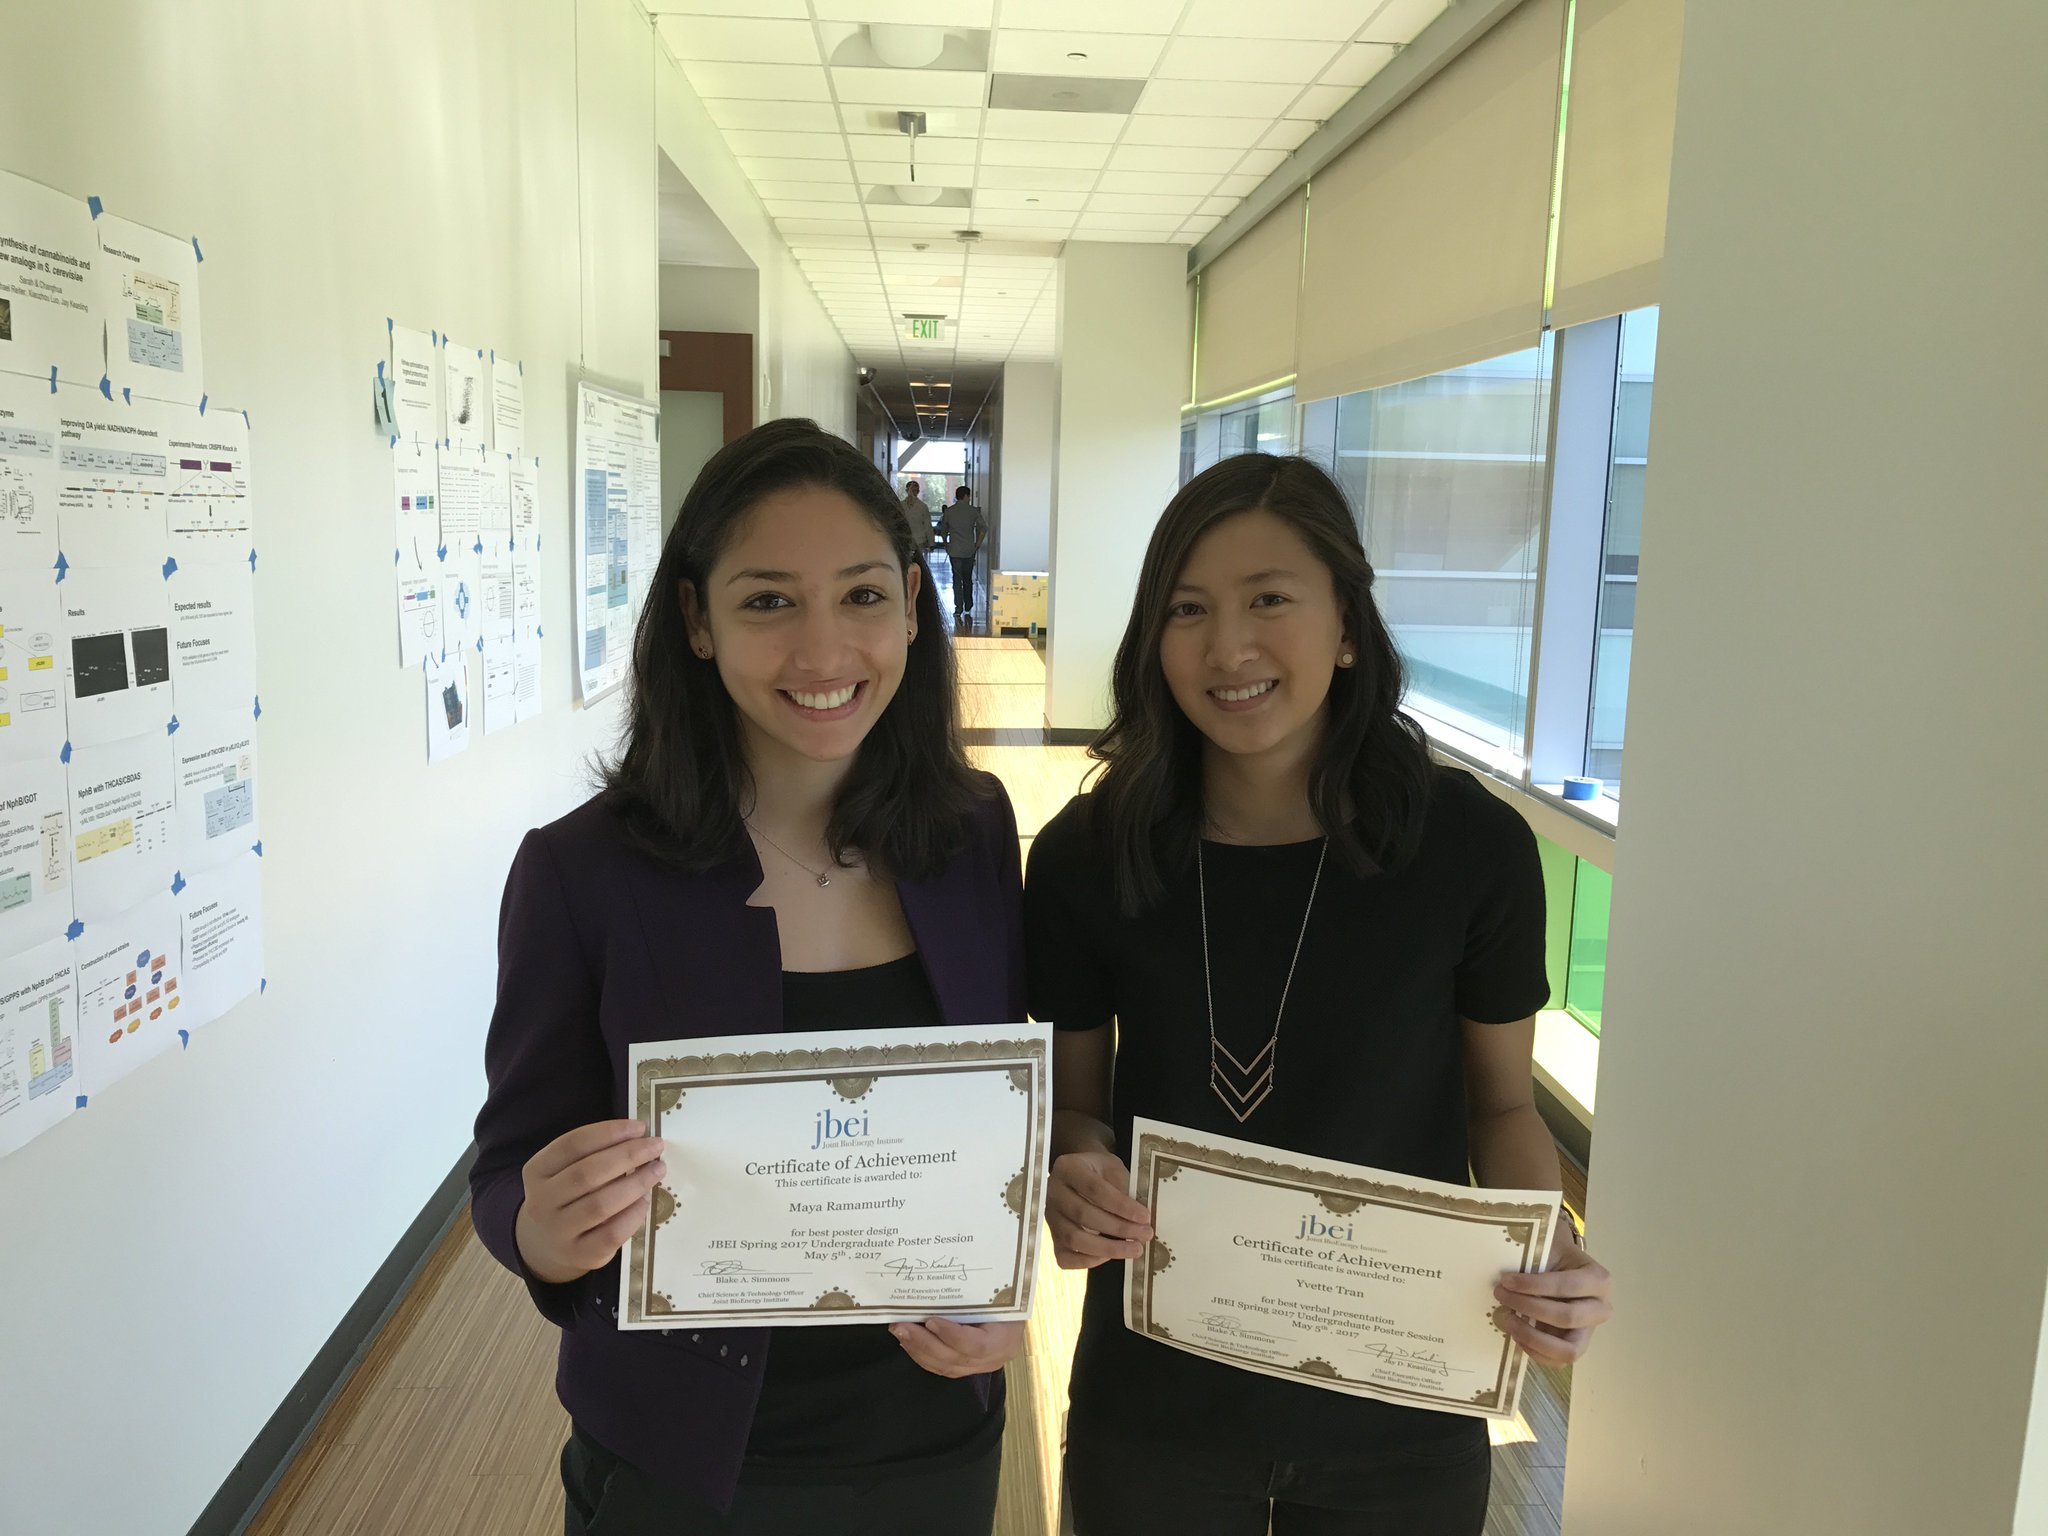 Maya & Yvette @UCBerkeley winners of @JBEI_ #Undergrad Poster Session! #BioBSE #BioSciNextGen https://t.co/bm0fF7z3pN https://t.co/zFn7B7p1j4